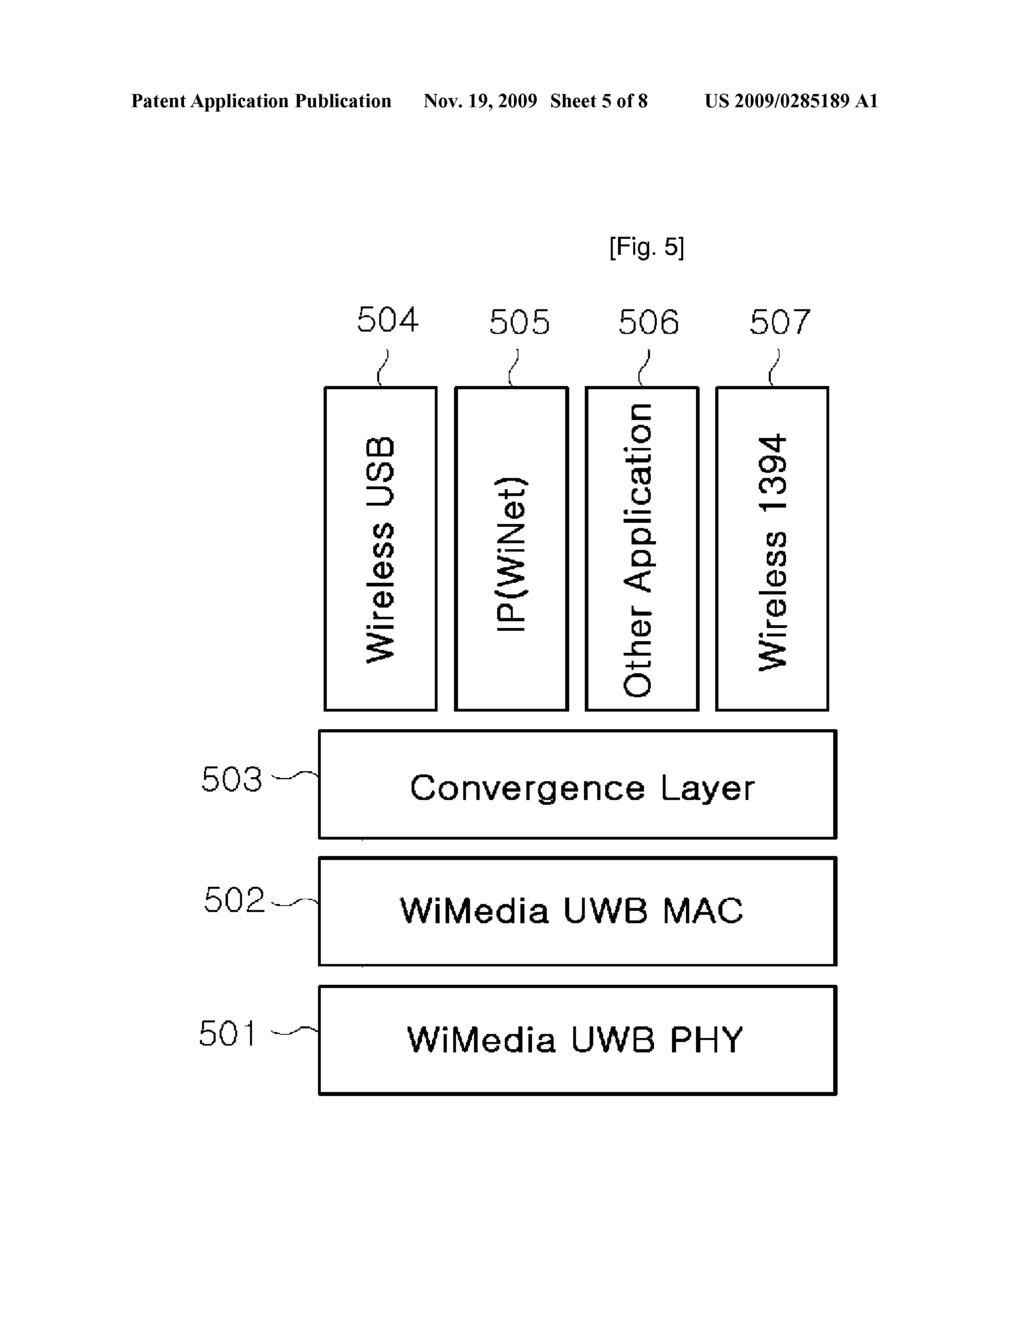 wlan combo access point device for interface wimedia uwb wlan combo access point device for interface wimedia uwb based wireless usb and software layer structure of combo access point device diagram